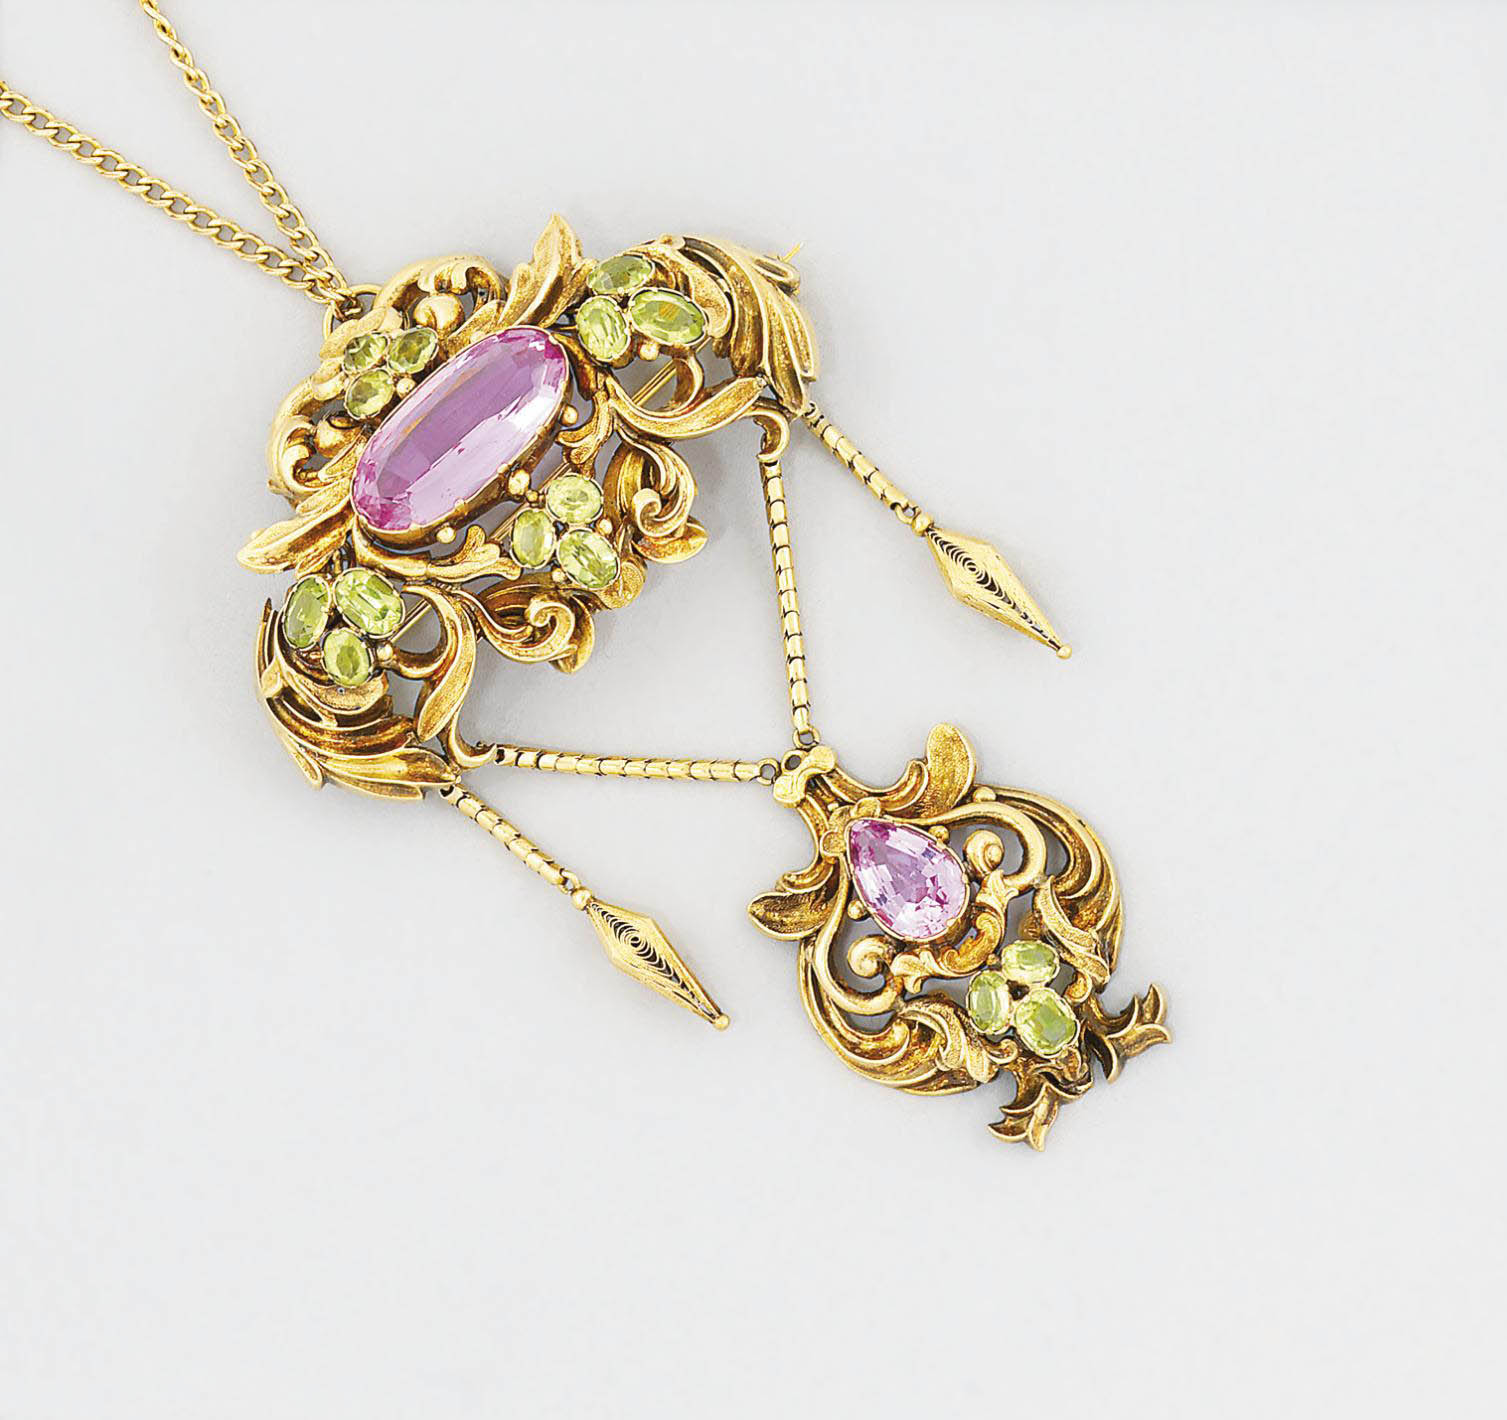 A 19th century gold, topaz and